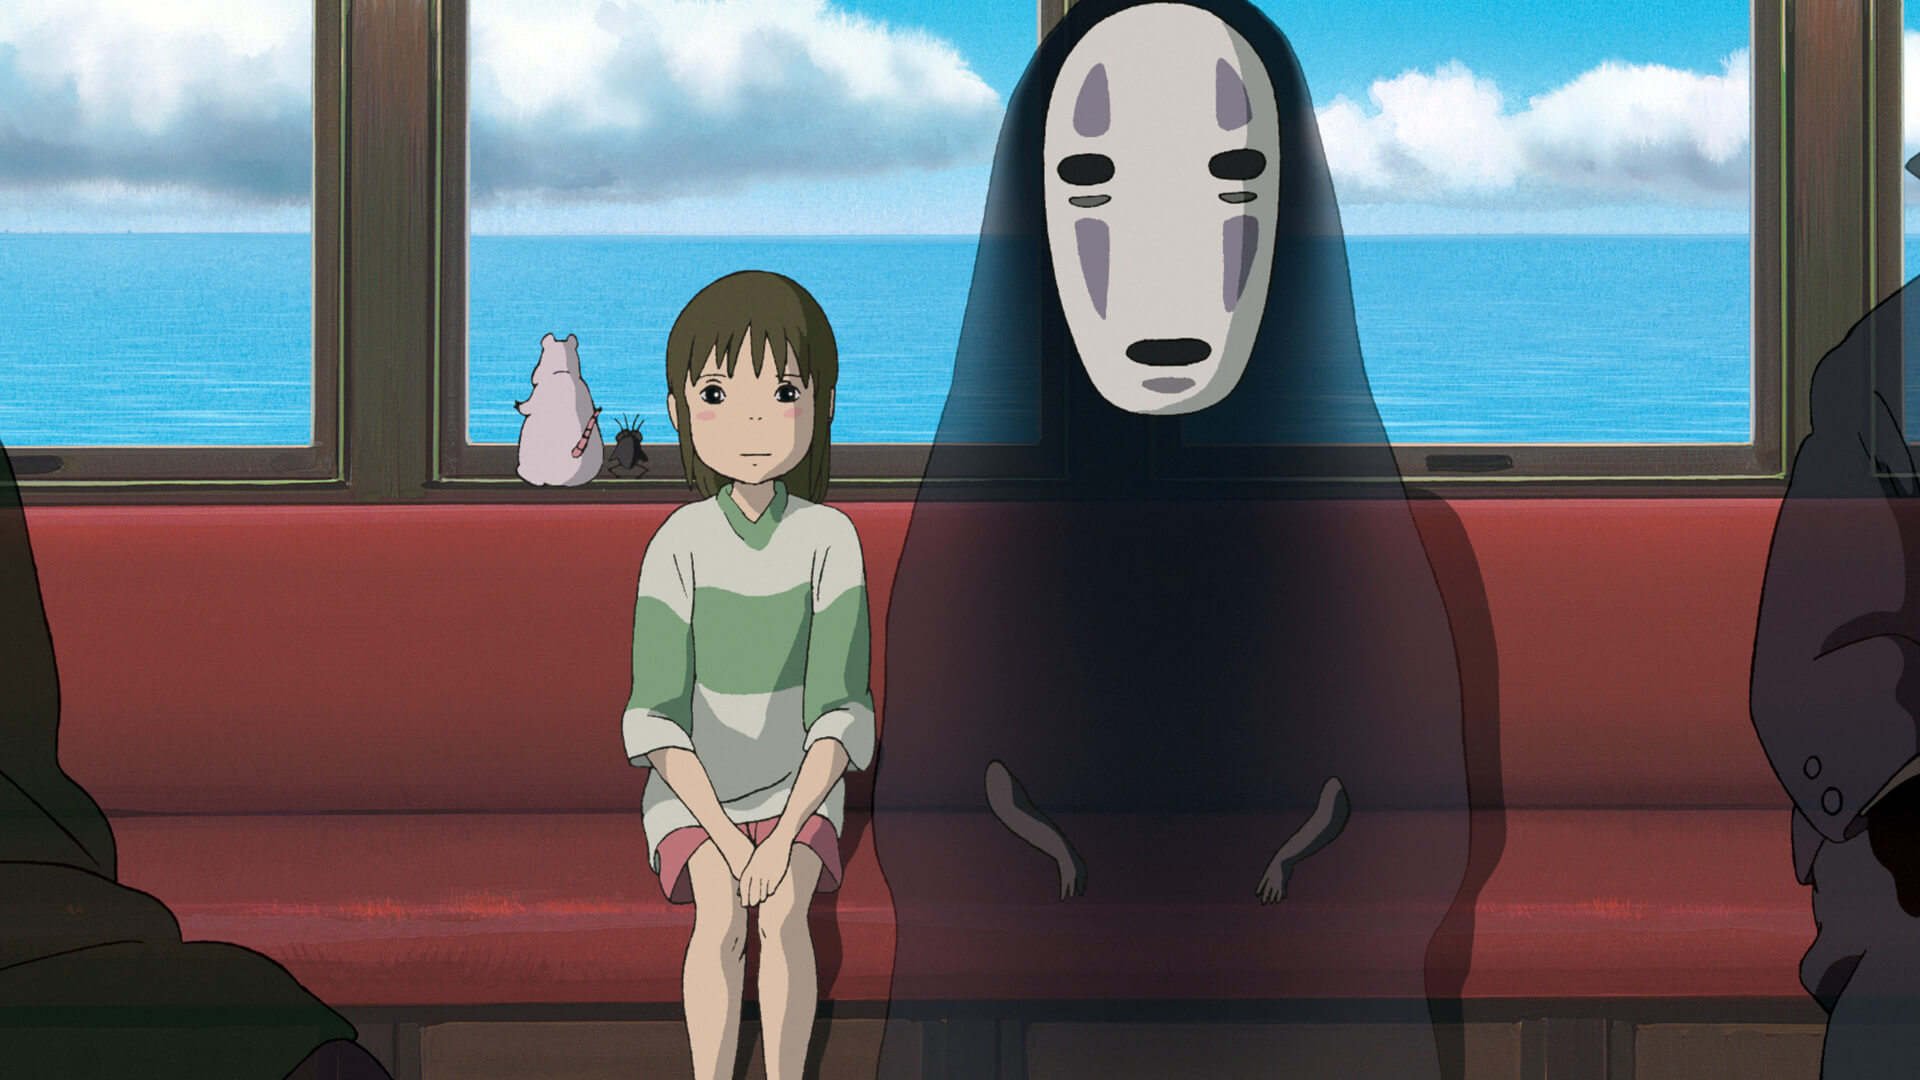 Studio Ghibli Movies Ranked - Check Out the Best